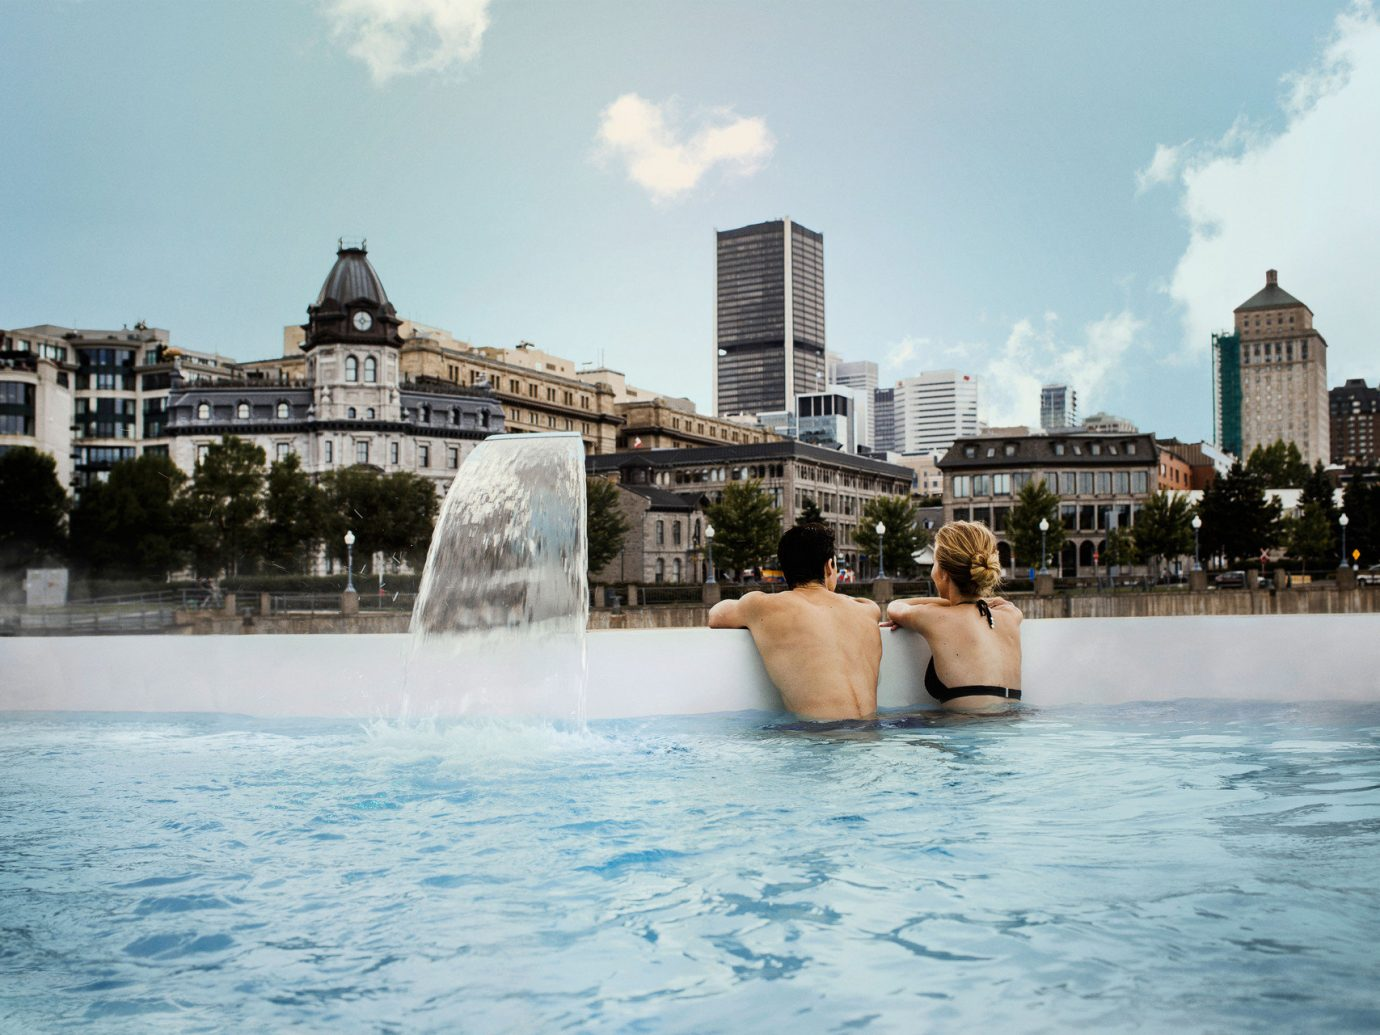 City city views couple Hot tub Hot tub/Jacuzzi jacuzzi outdoor pool Outdoors people Pool relaxation relaxing Spa Trip Ideas view water outdoor sky swimming pool fountain landmark vacation amusement park water feature tourism Water park park Sea Resort swimming